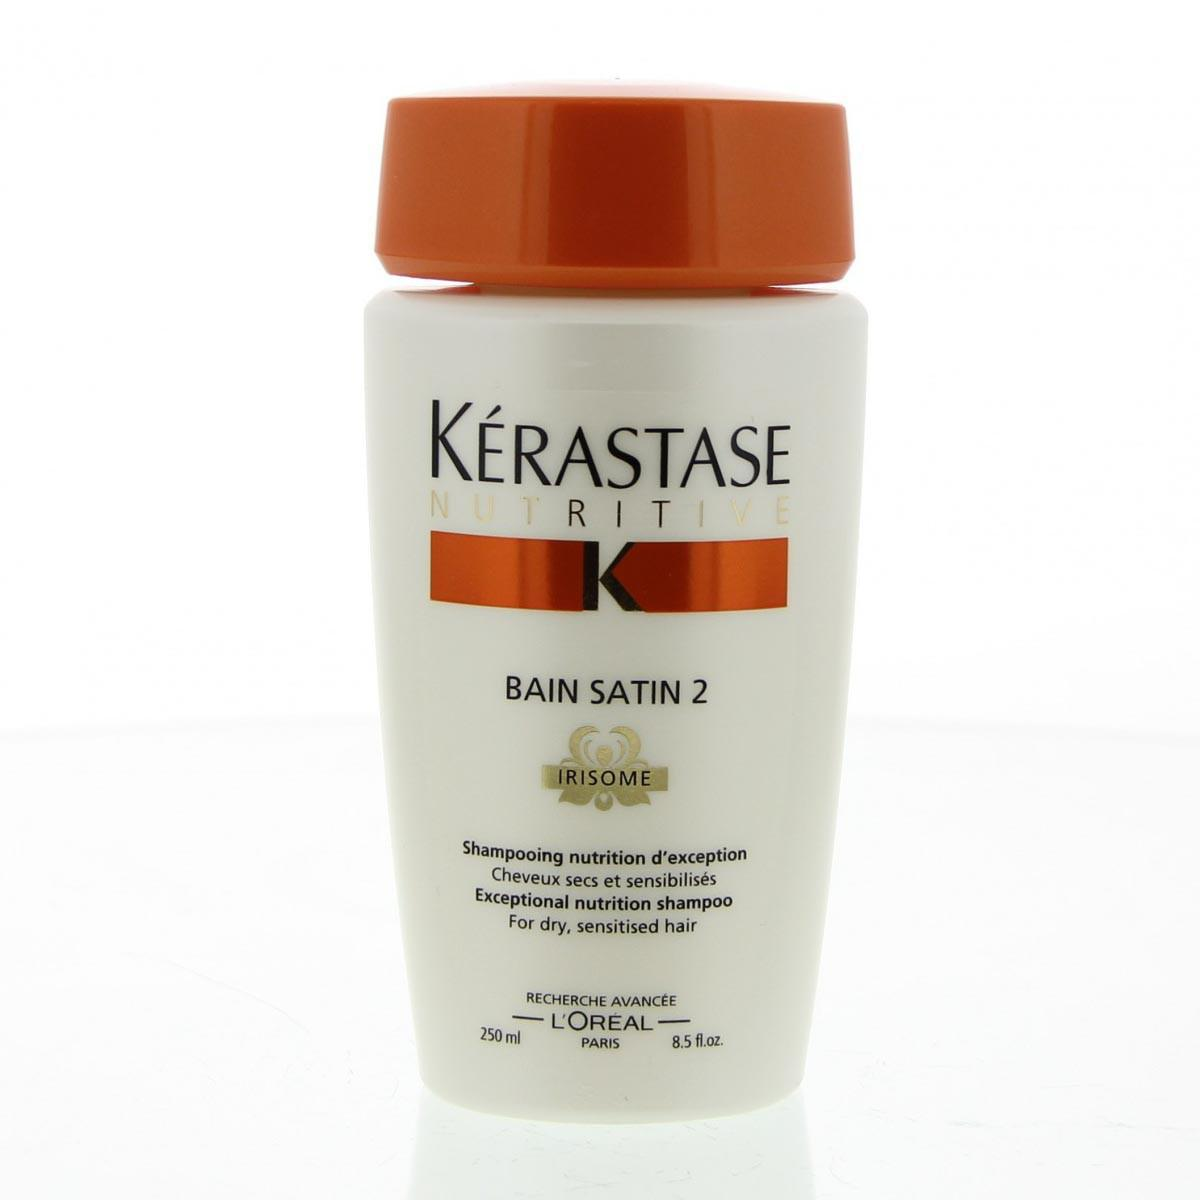 Kerastase Nutritive Bain Satin 2 250 ml